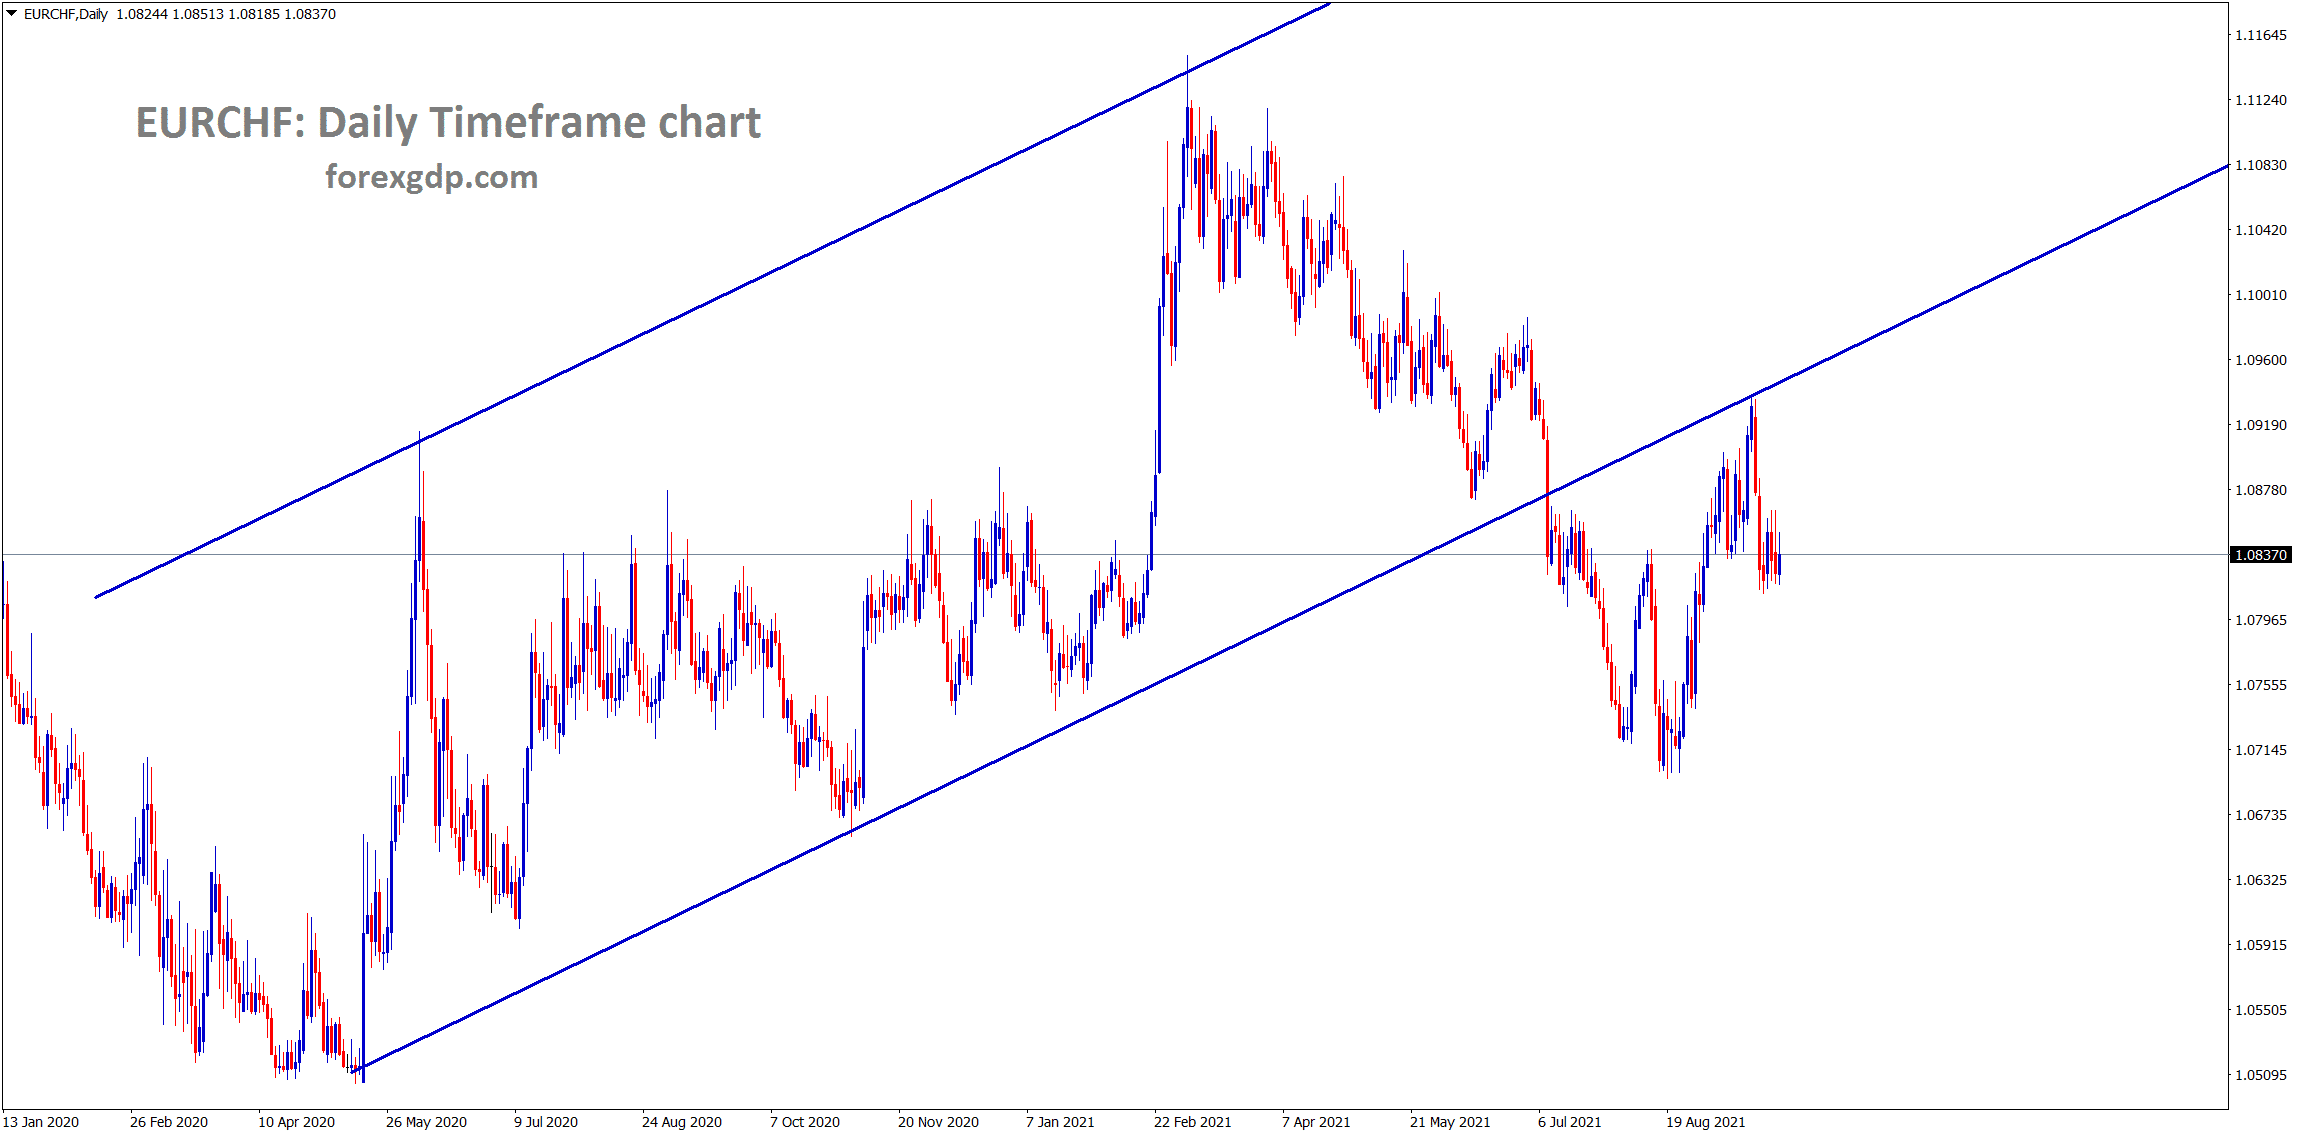 EURCHF has retested the broken ascending channel and consolidating now at the retest area